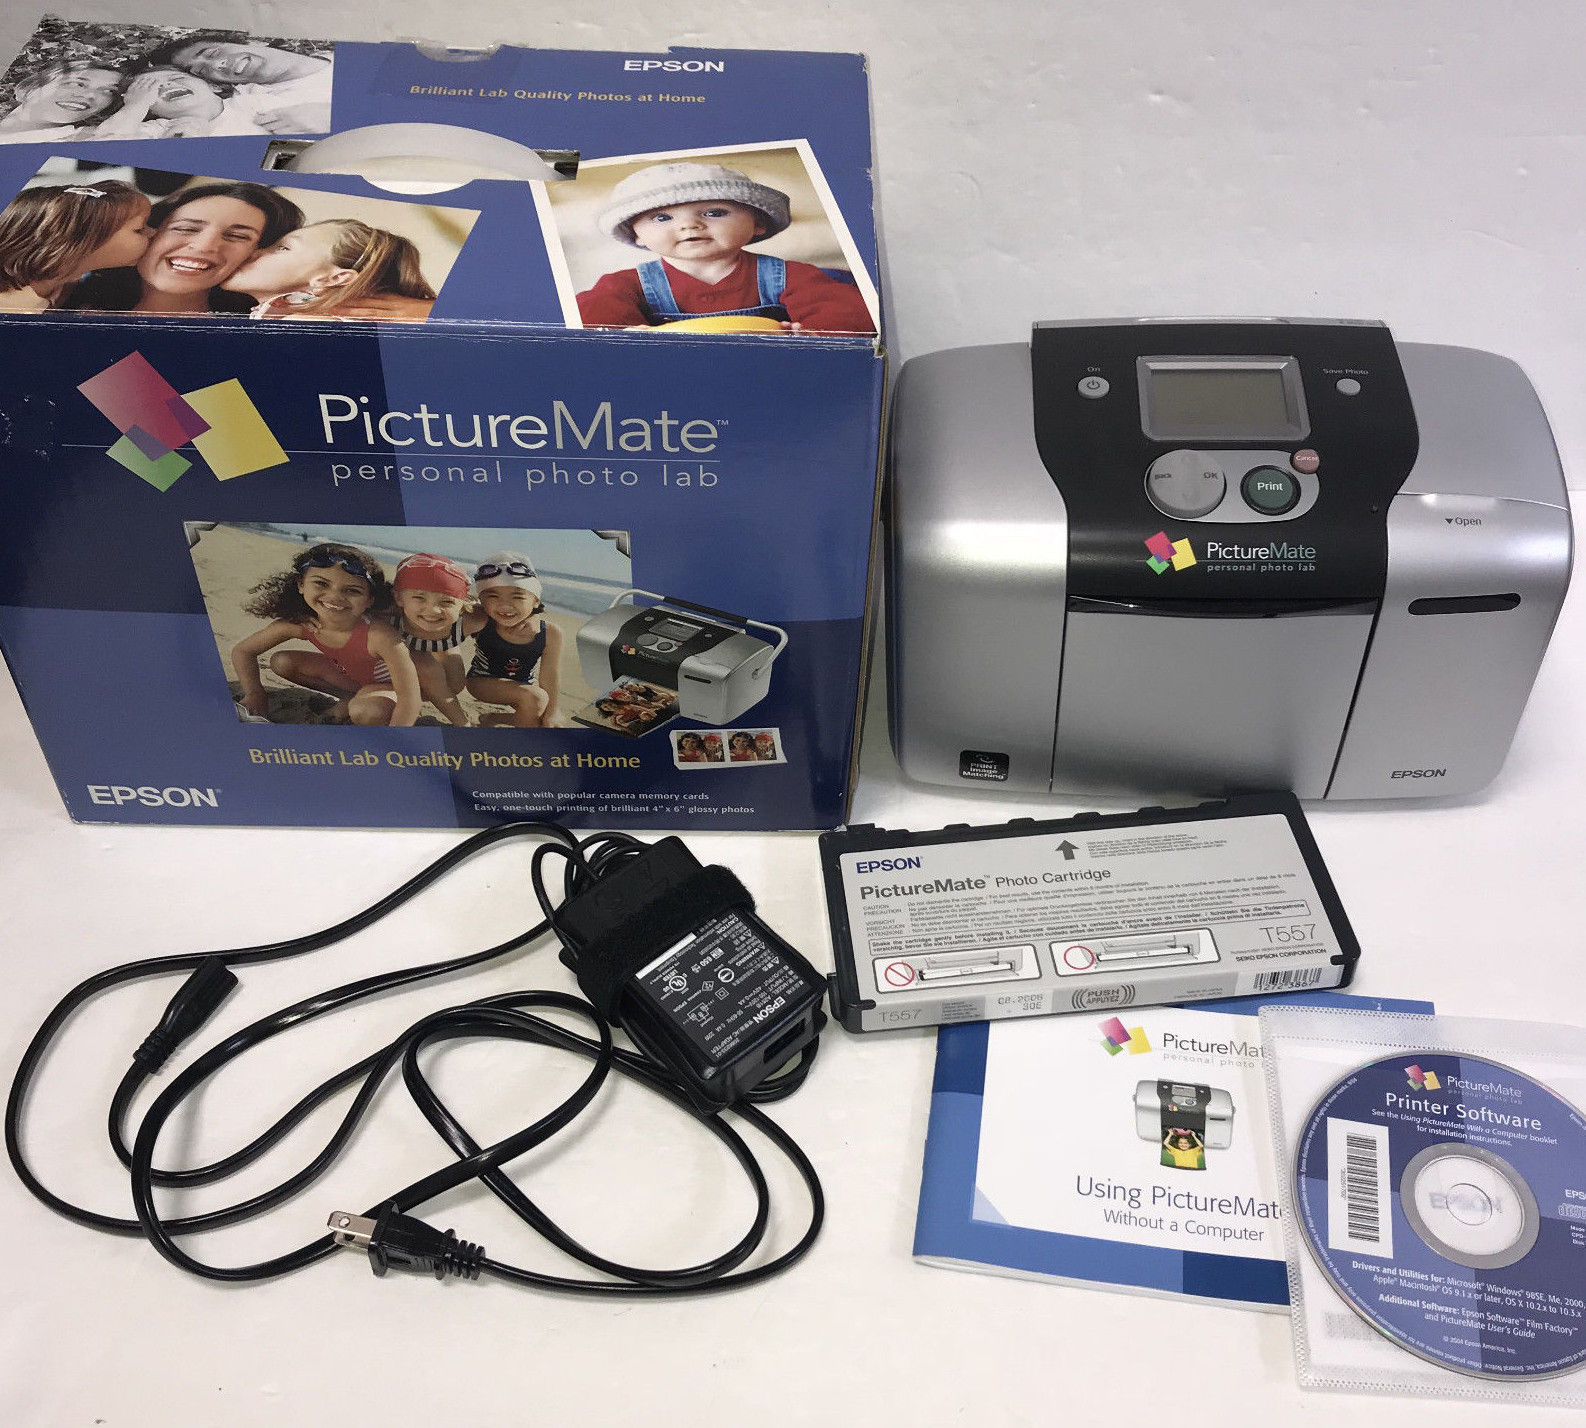 Epson Picturemate Express B271a Personal And 50 Similar Items